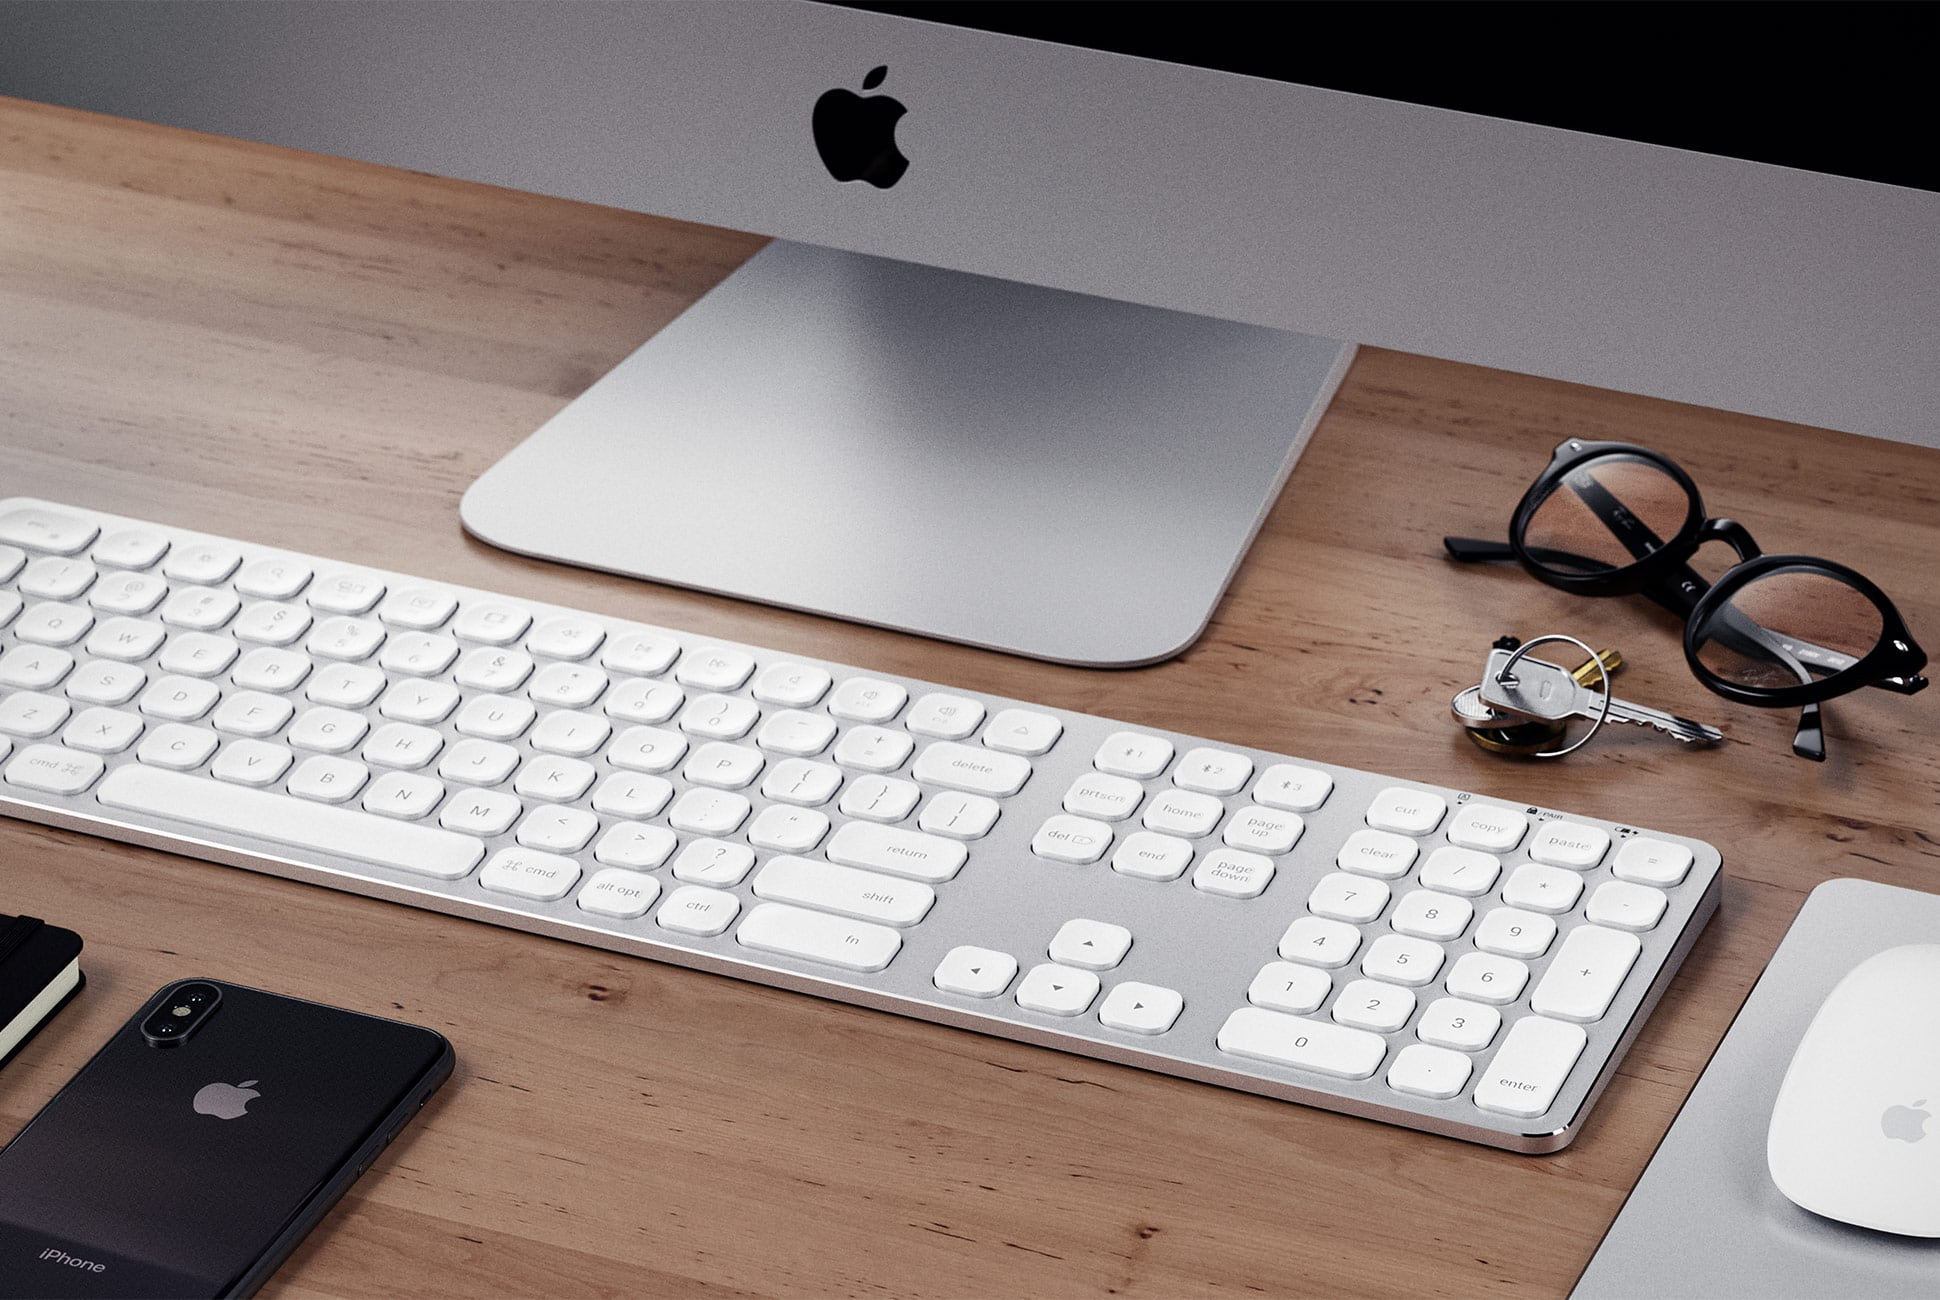 satechi aluminum imac keyboards gadget flow. Black Bedroom Furniture Sets. Home Design Ideas